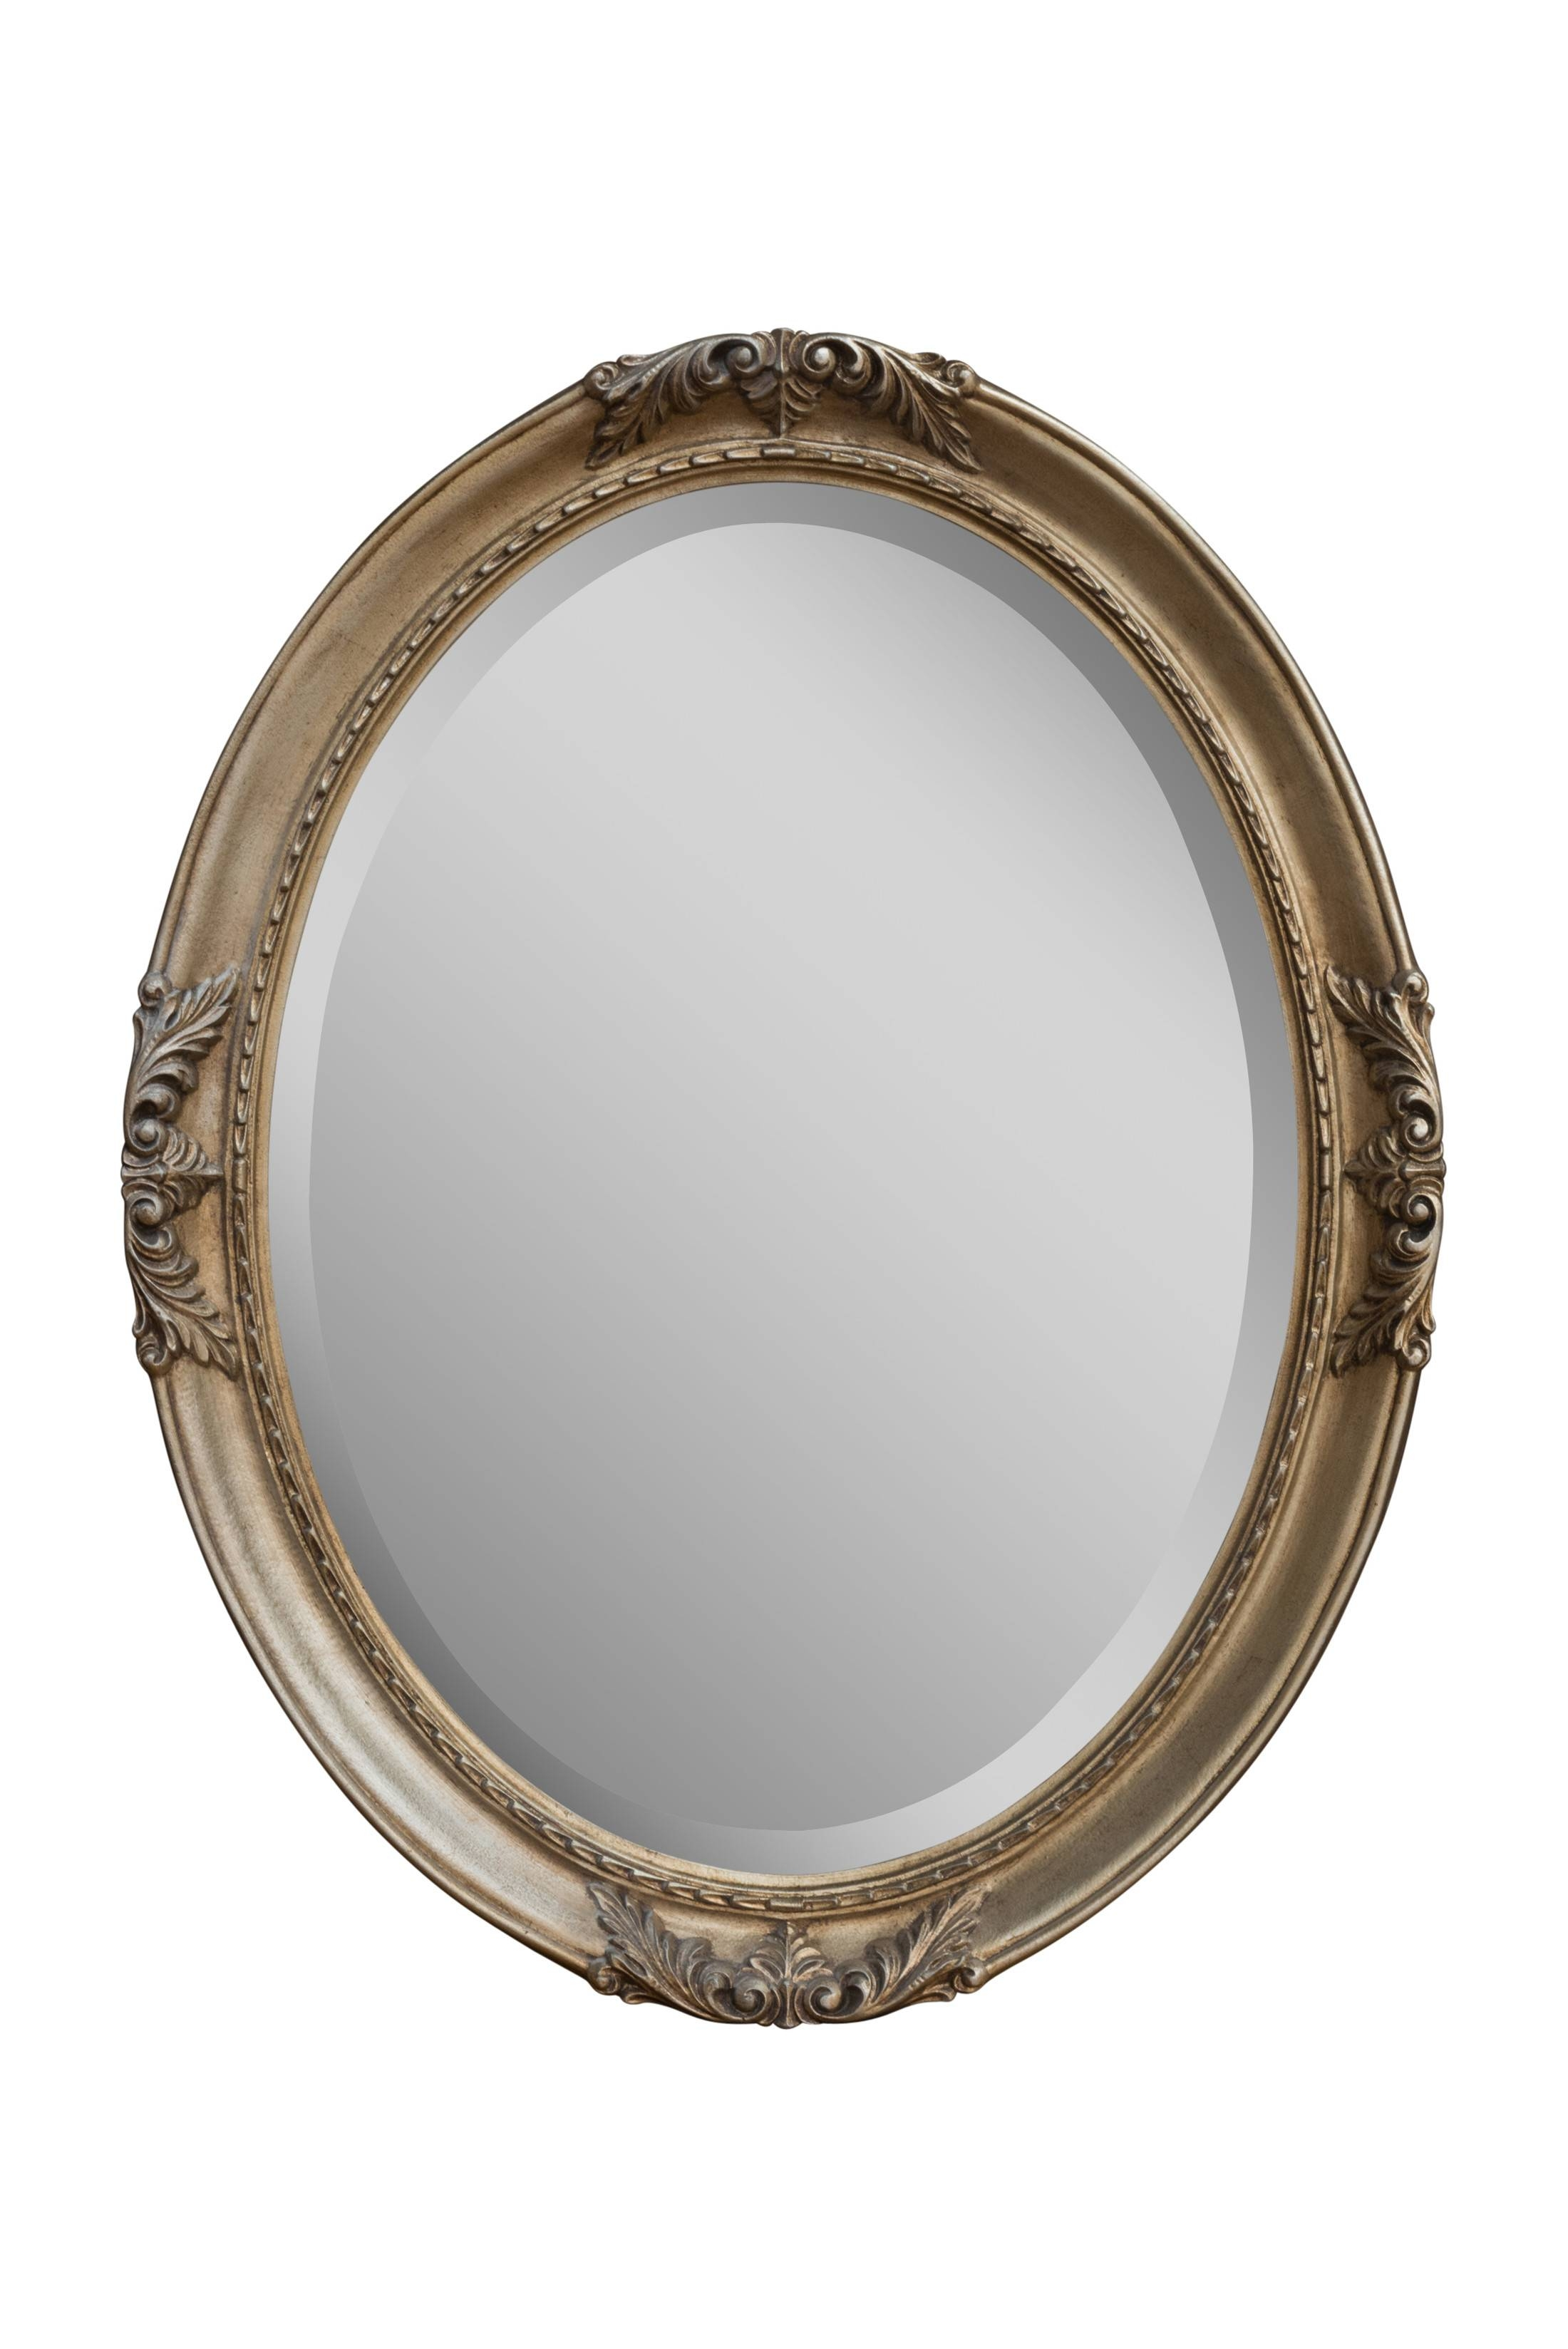 Silver Flora Oval | Bedroom Mirrors For Sale - Panfili Mirrors within Silver Oval Mirrors (Image 23 of 25)